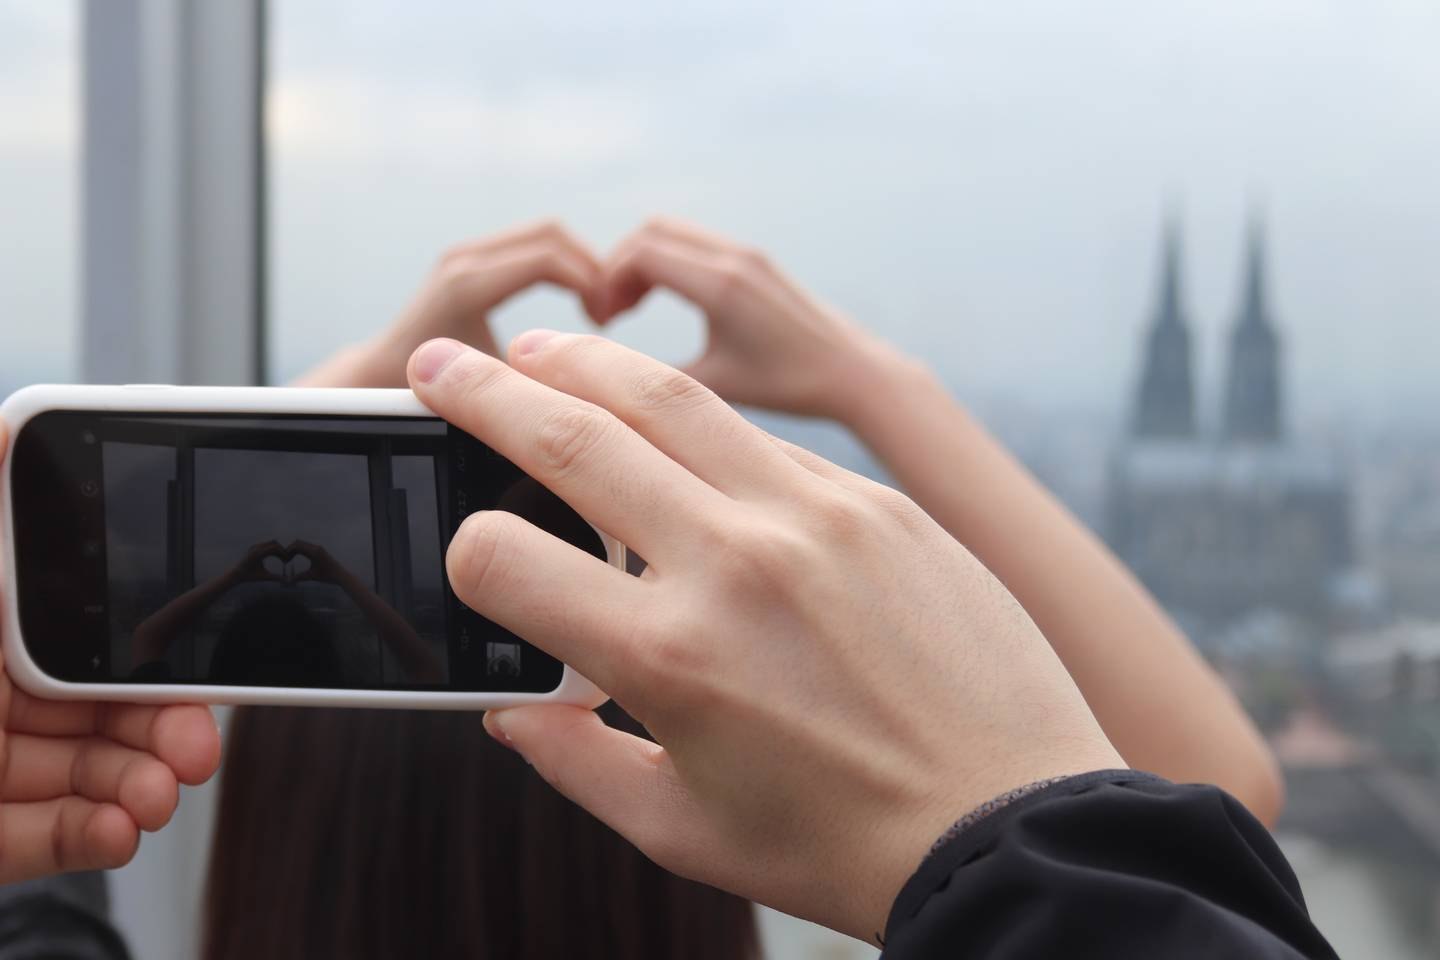 Two hands holding a phone and taking a picture of somebody elses hand forming a heart around the cologne cathedral in the background.